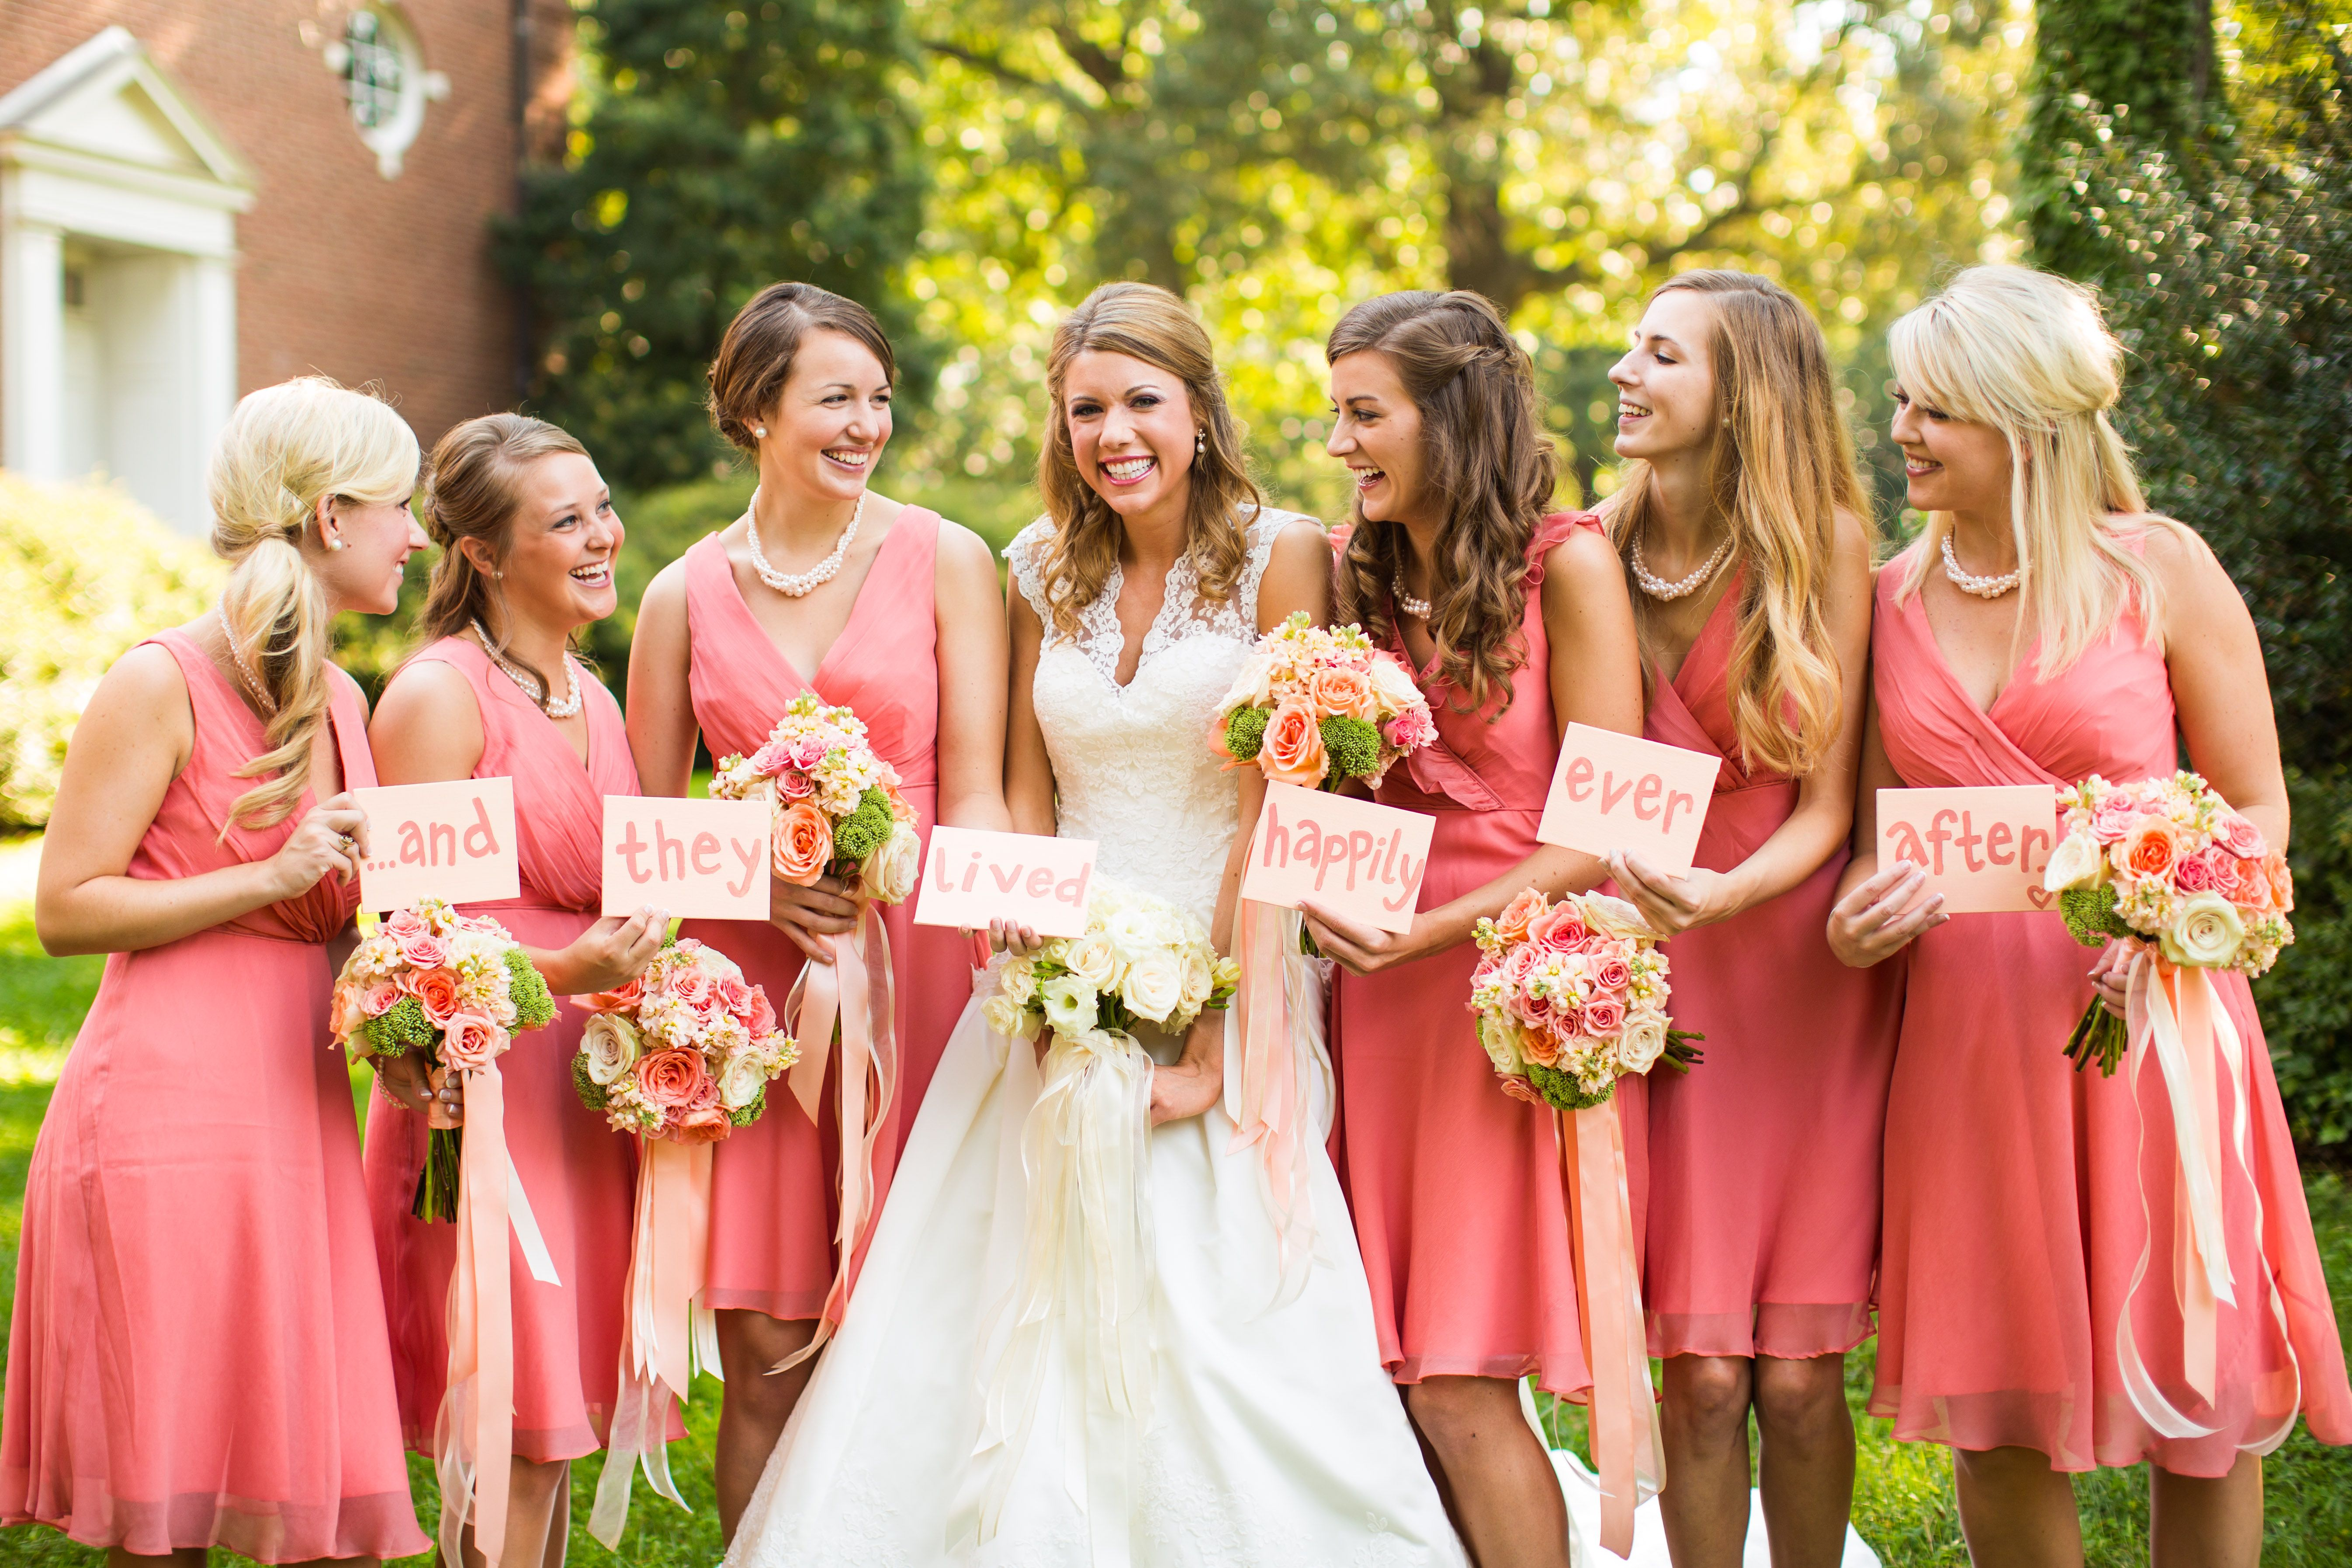 Funny unique silly bridesmaid photo guava bridesmaid dresses from funny unique silly bridesmaid photo guava bridesmaid dresses from davids bridal my wedding at tivoli too pinterest wedding and weddings ombrellifo Gallery